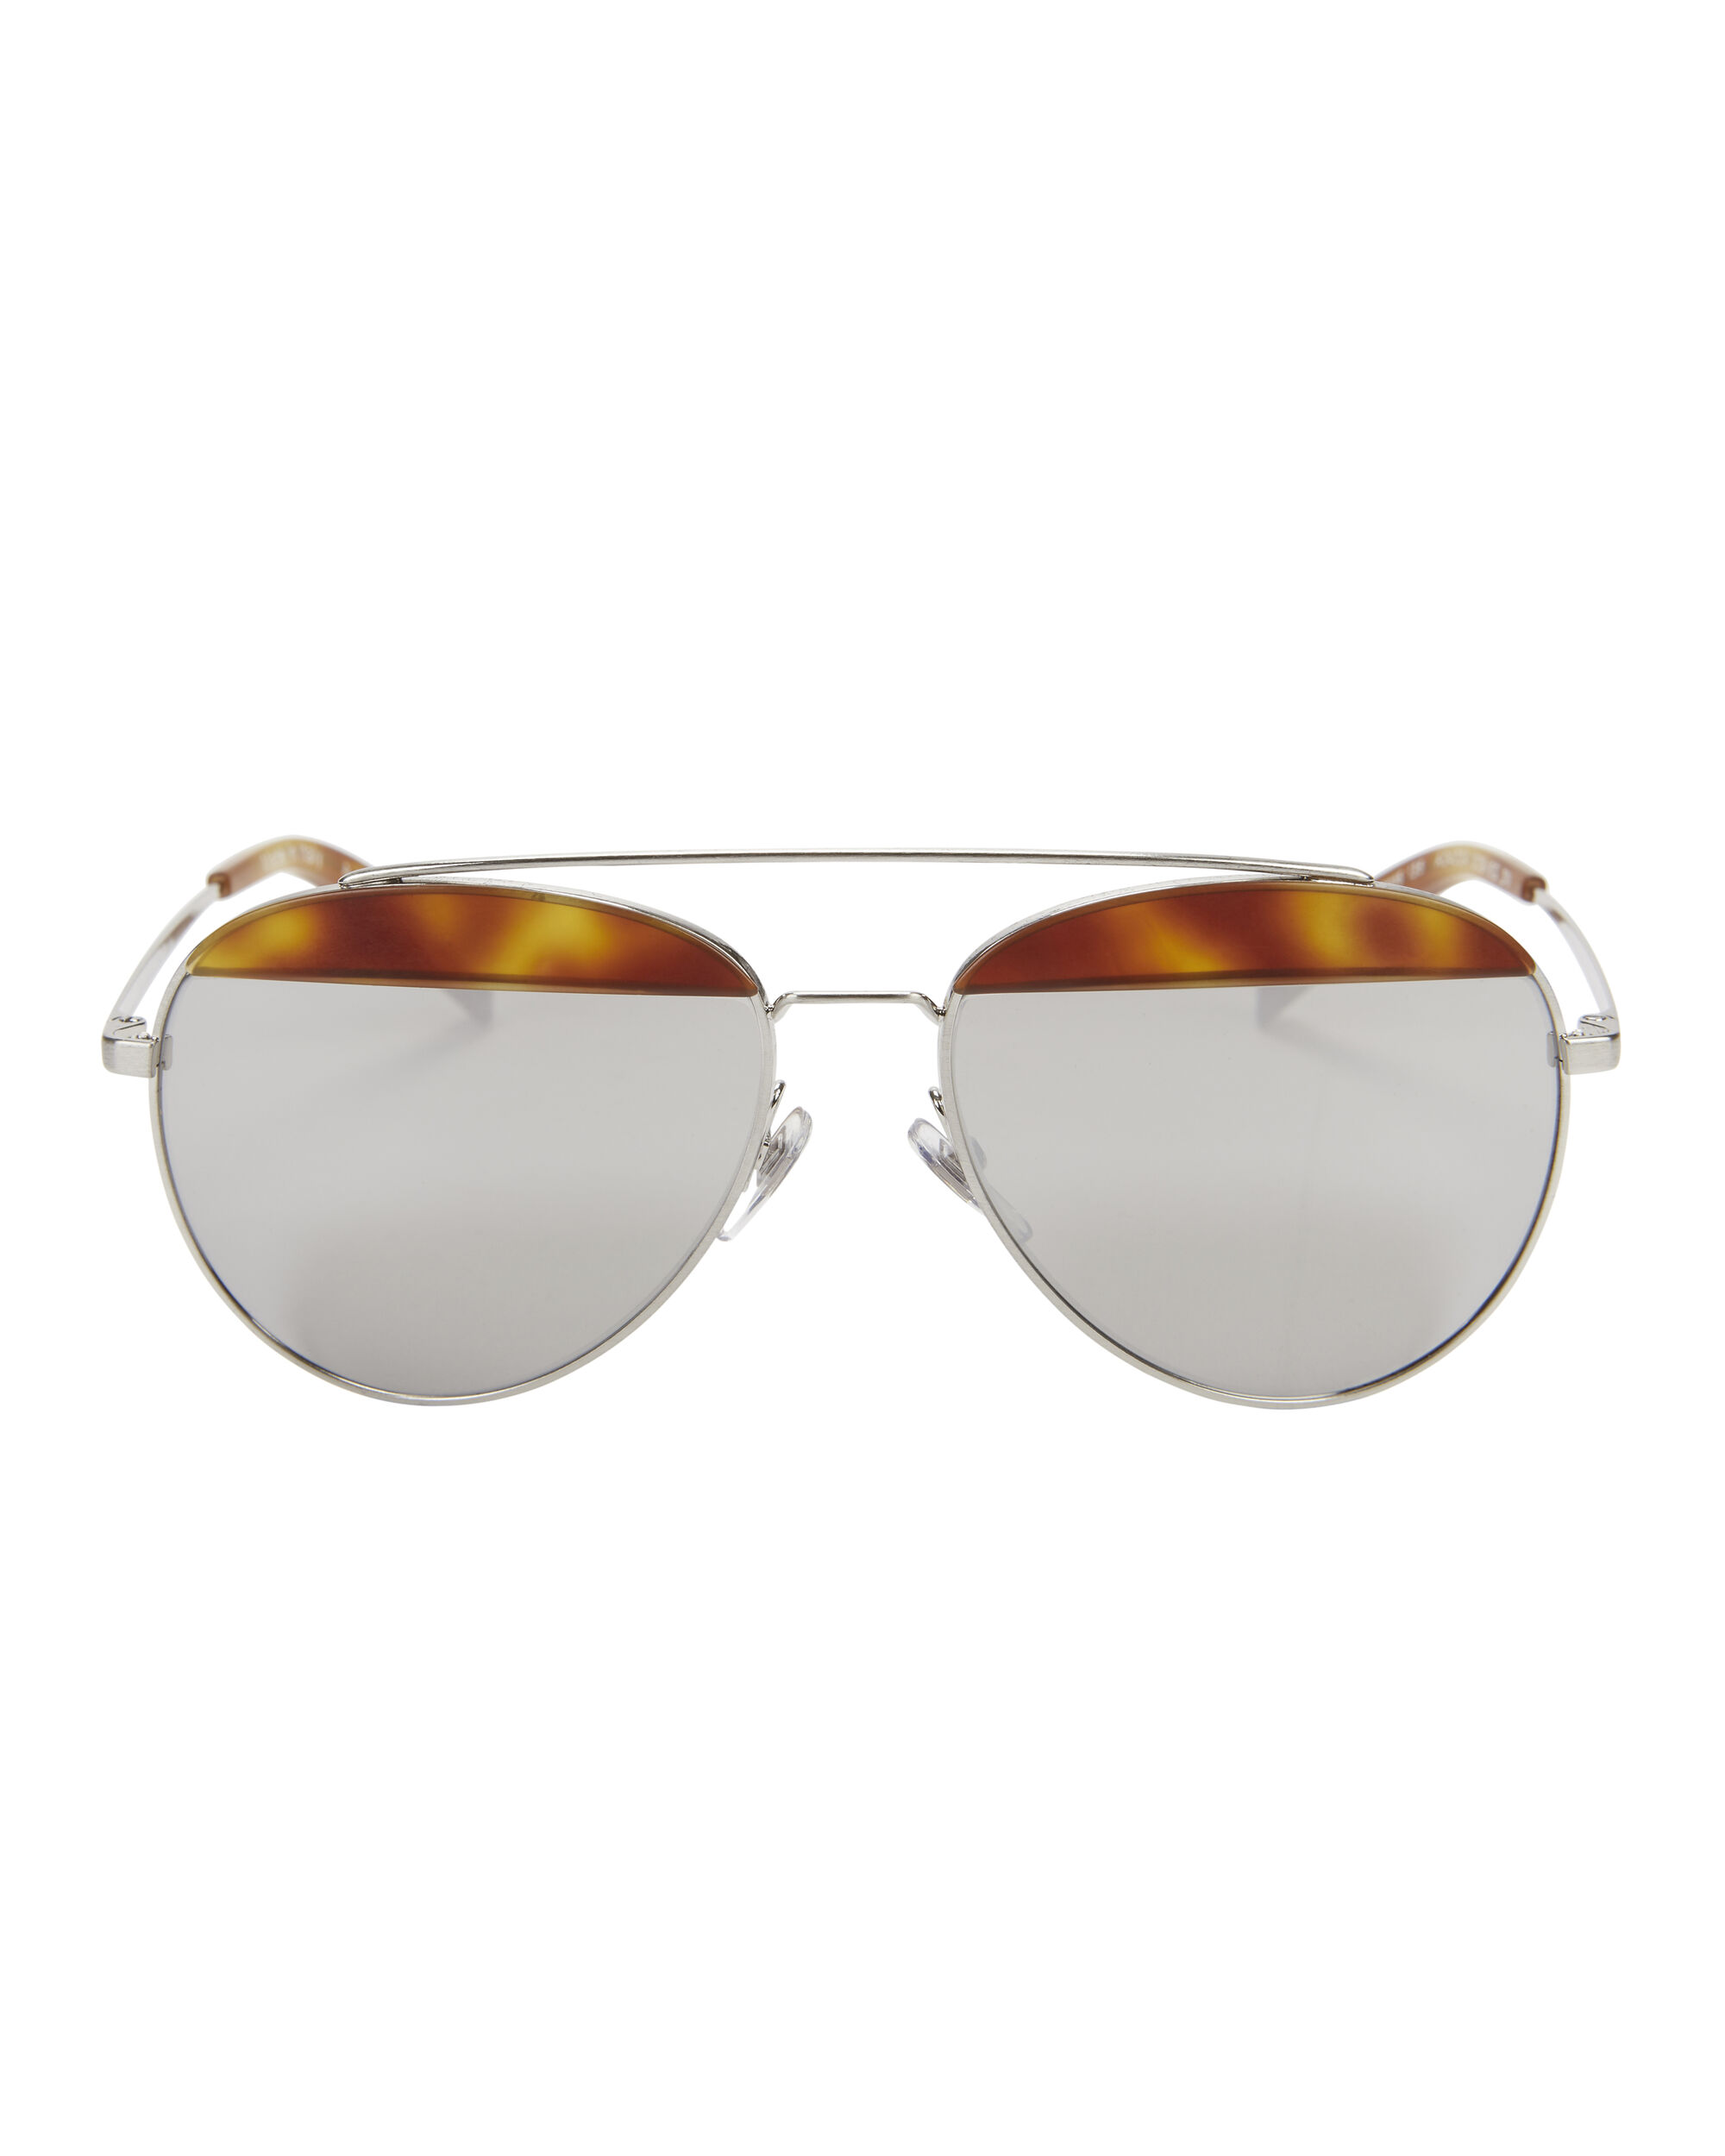 Oliver Peoples for Alain Mikli Aviator Sunglasses, BLACK, hi-res